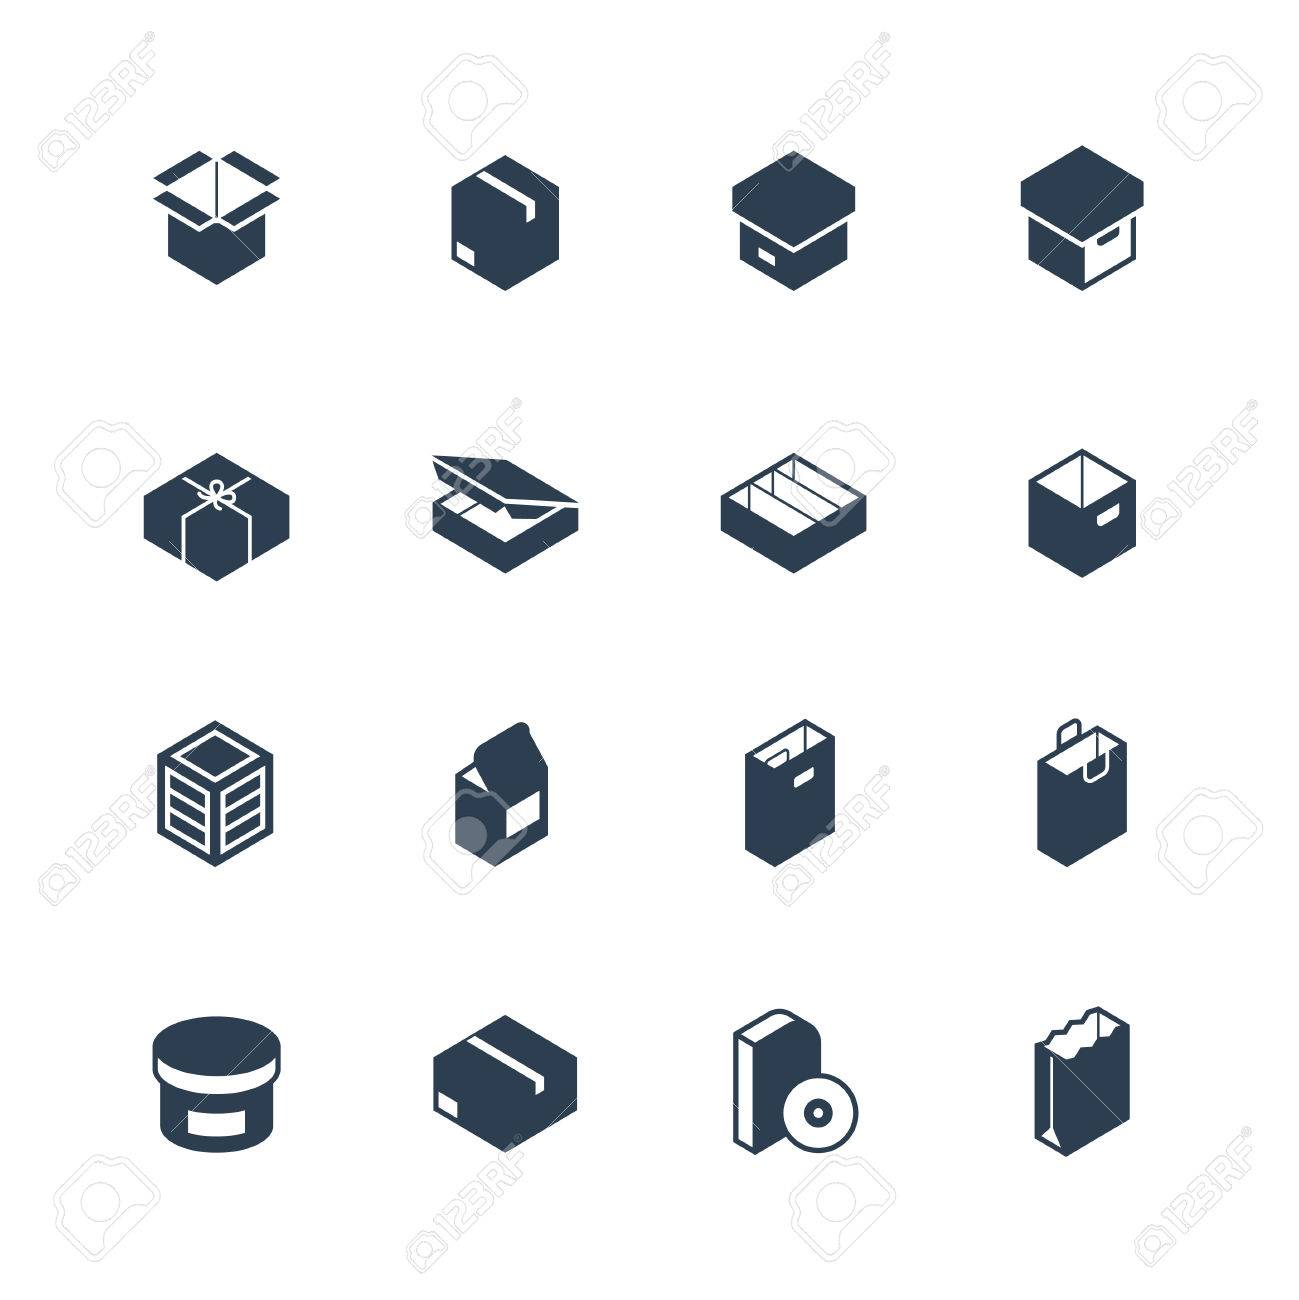 Set of package types vector icons - 58521174